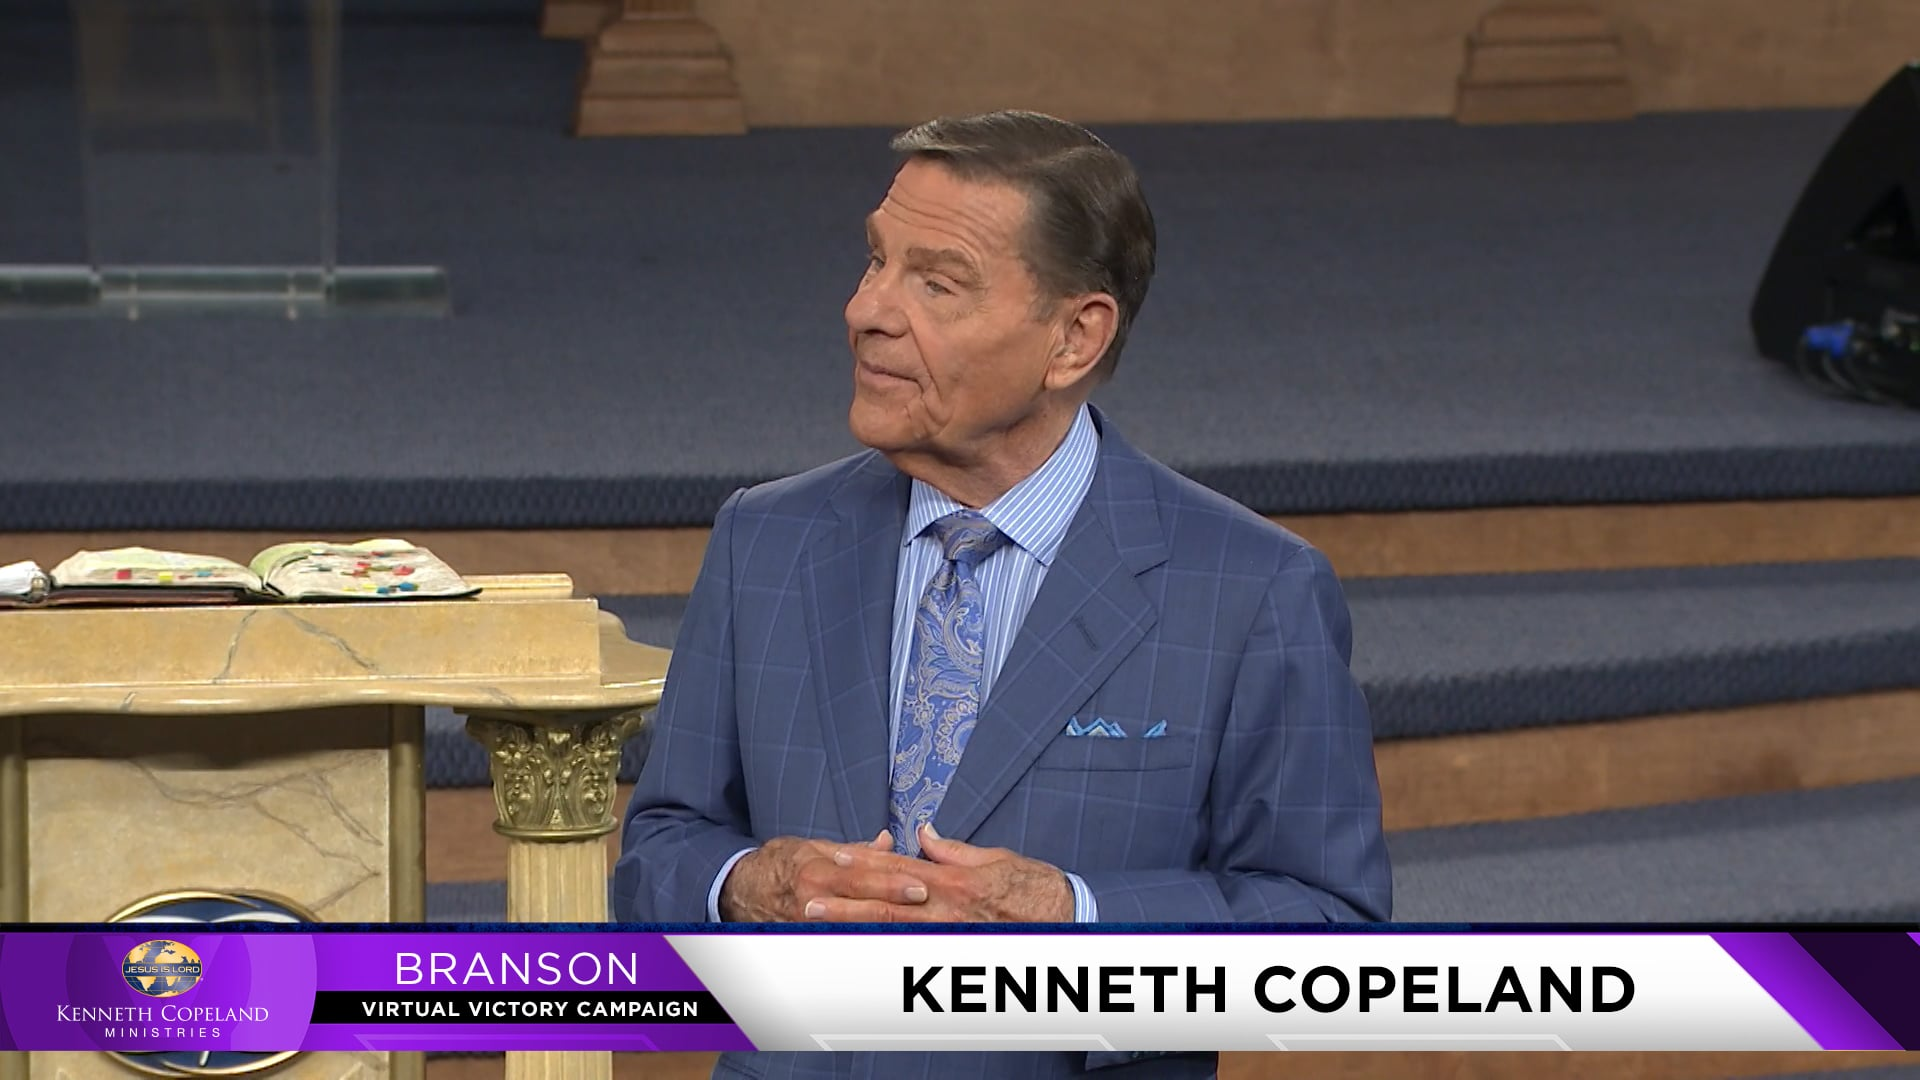 Jesus always had a plan and knew what He would do in every situation He faced on earth. At the 2021 Branson Virtual Victory Campaign, Kenneth Copeland teaches how faith is always prepared. Faith gets ready and plans ahead. Faith believes, praises God, and has corresponding actions. Its motive is love!